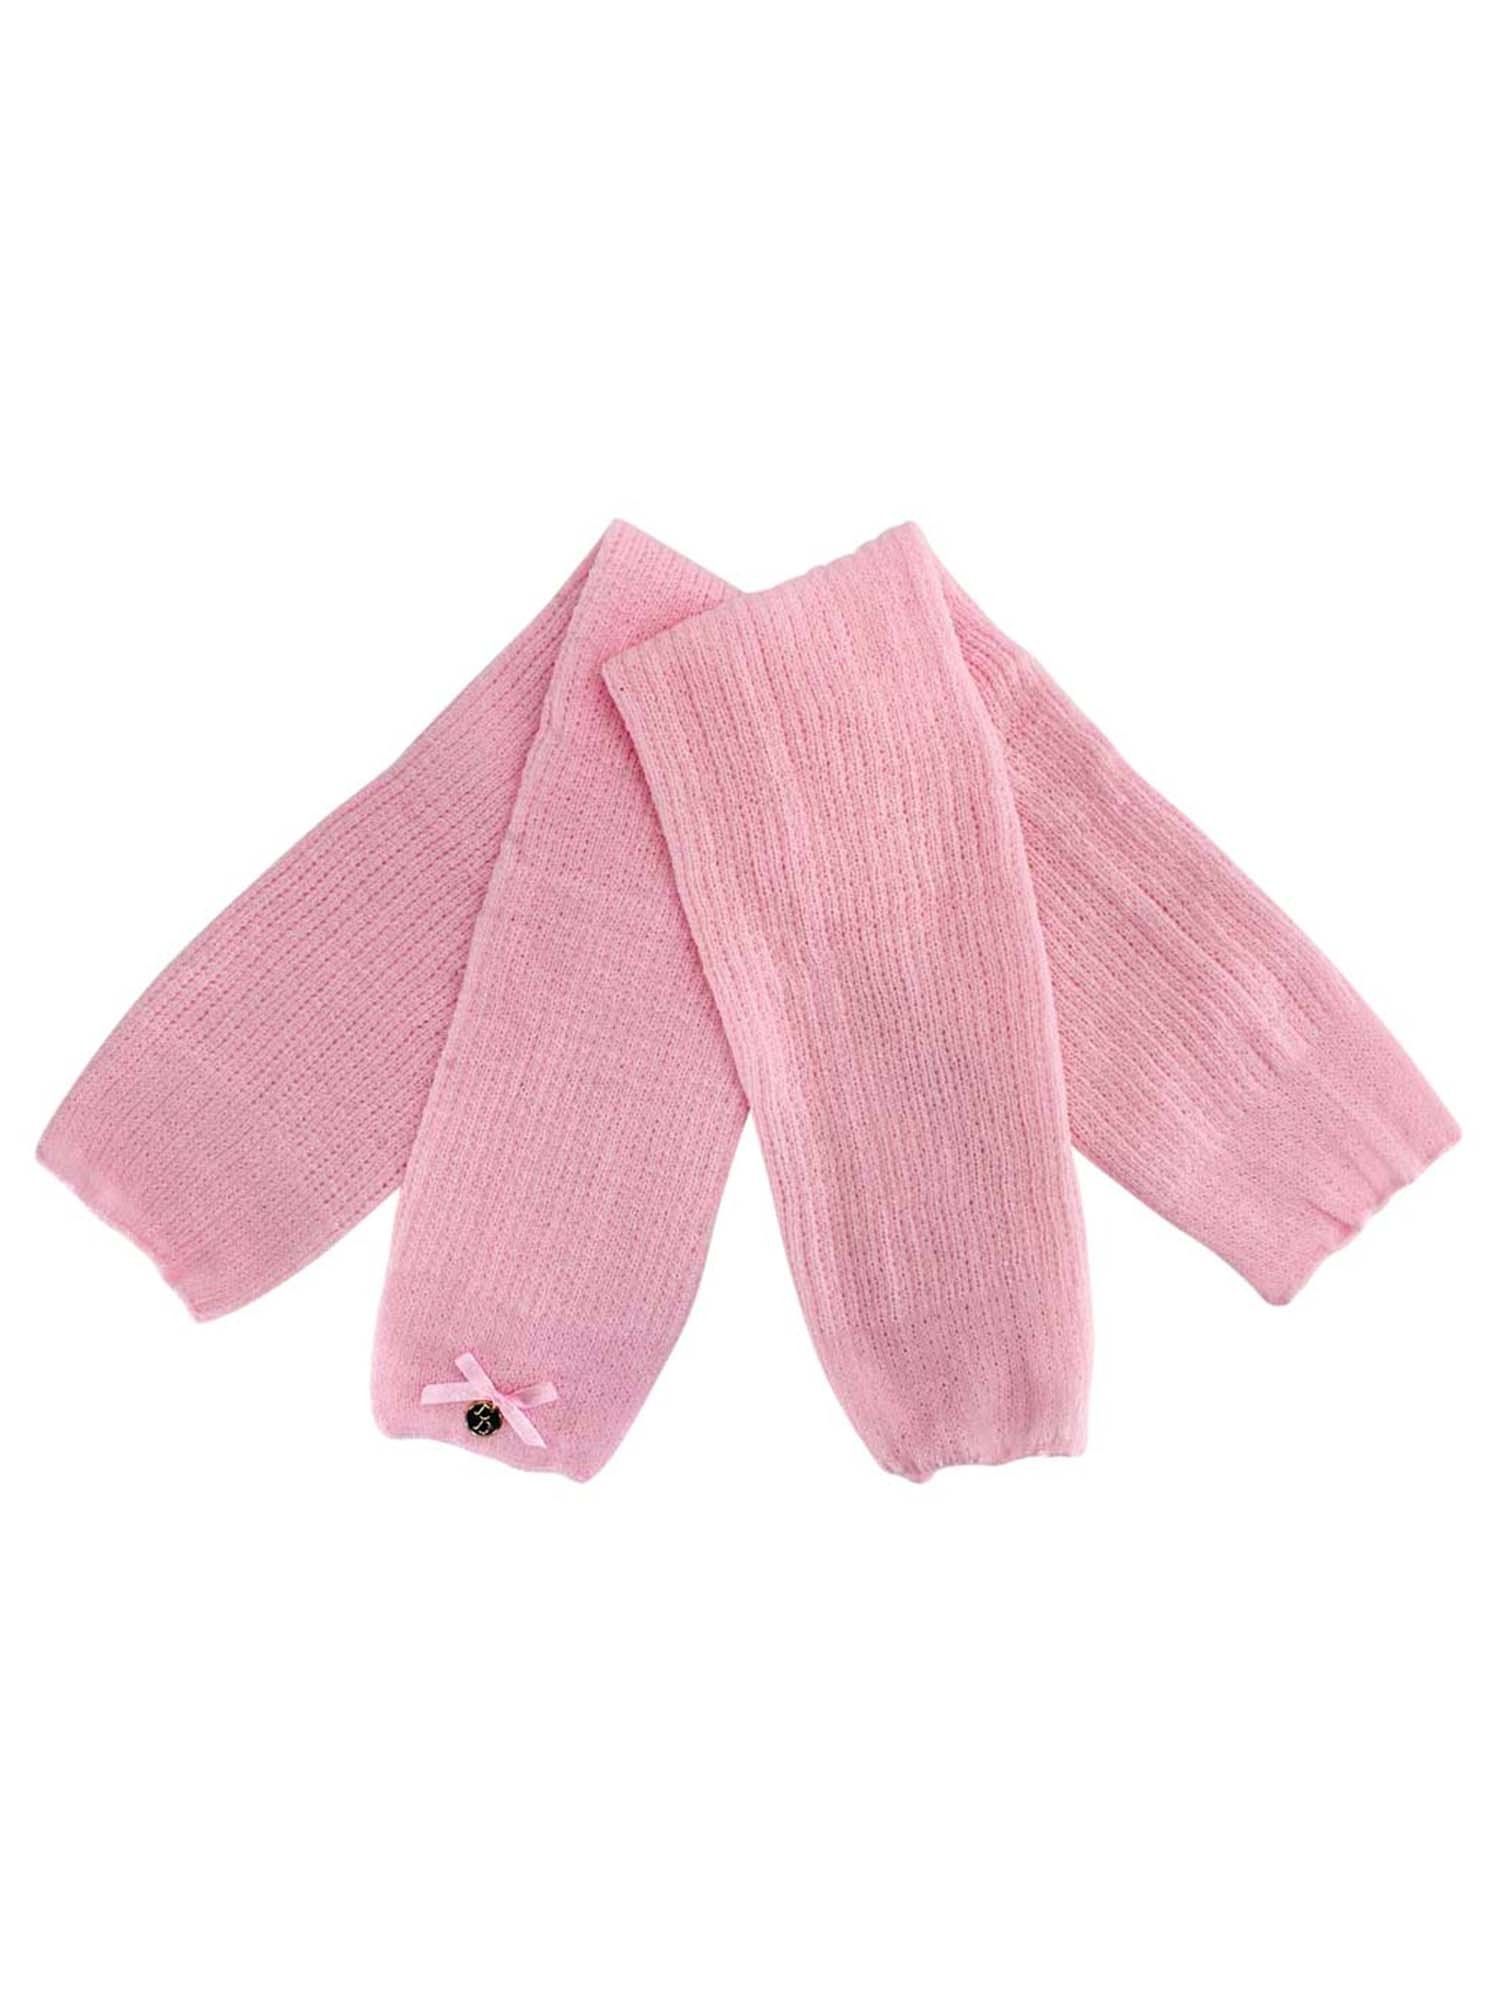 Pink Long Thick Knit Dance Leg Warmers by Luxury Divas (Image #3)